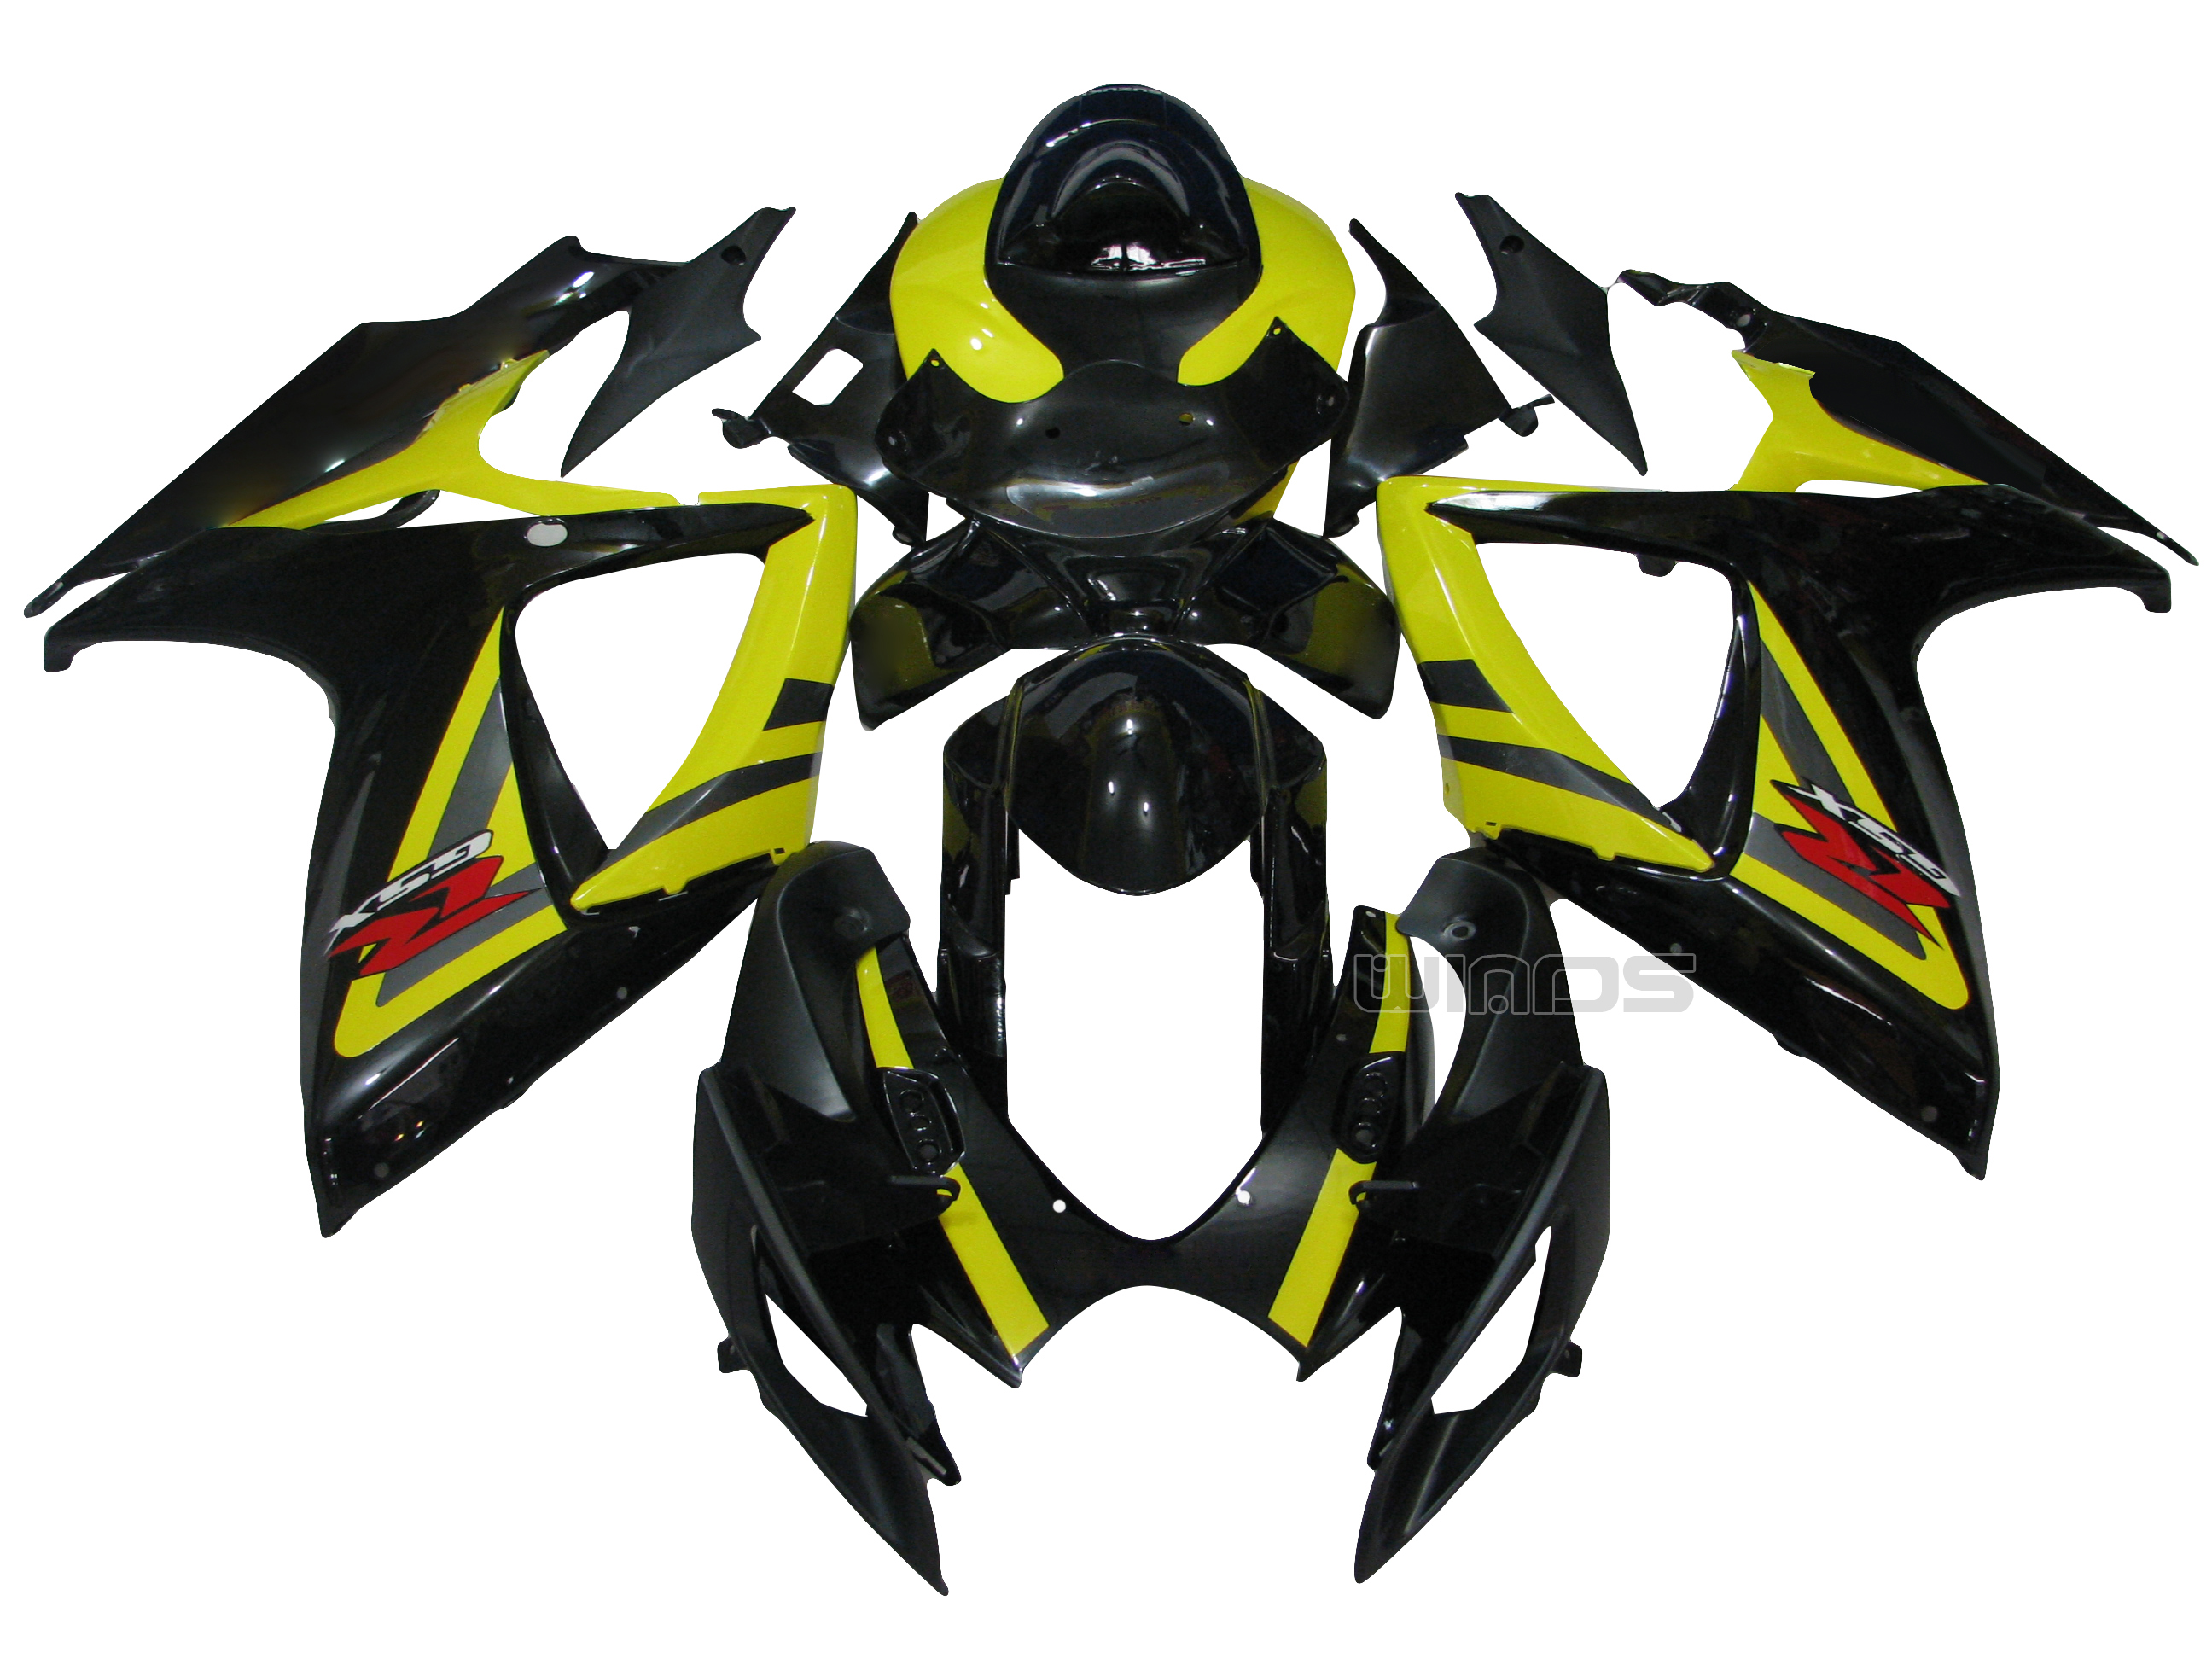 For Suzuki <font><b>GSXR</b></font> <font><b>600</b></font> 750 K6 2006 <font><b>2007</b></font> Injection ABS Bodywork <font><b>Fairing</b></font> <font><b>Kit</b></font> Yellow Black image